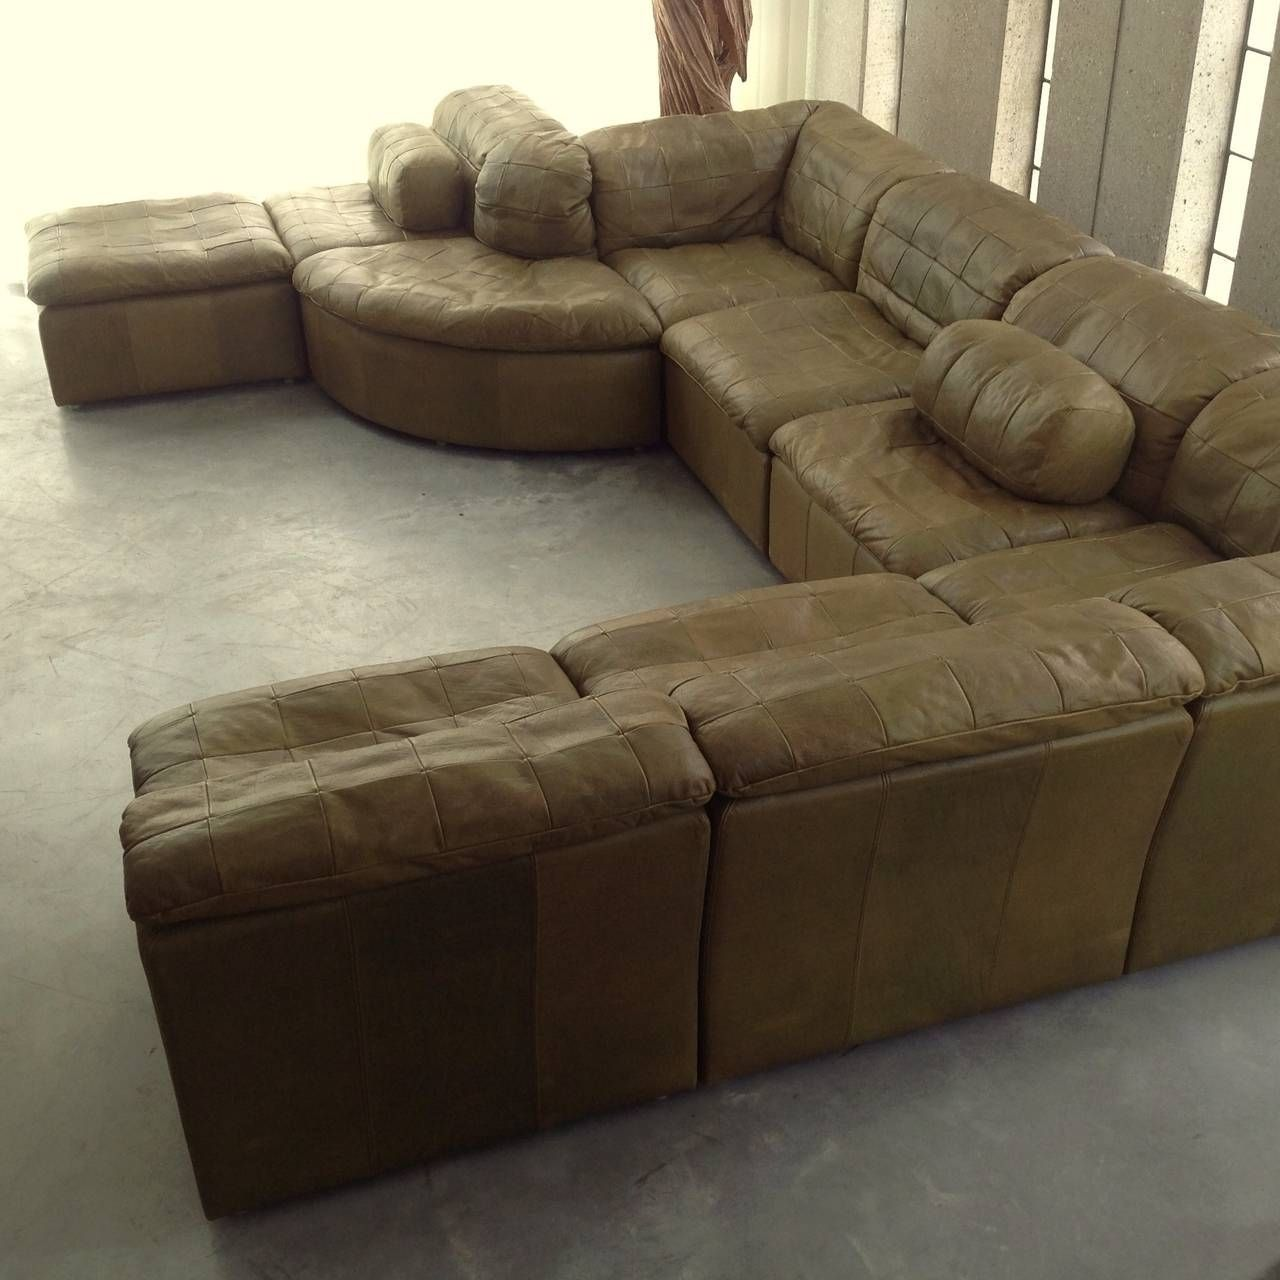 Olive Green Leather Sectional Sofa Olive Green Couches Leather